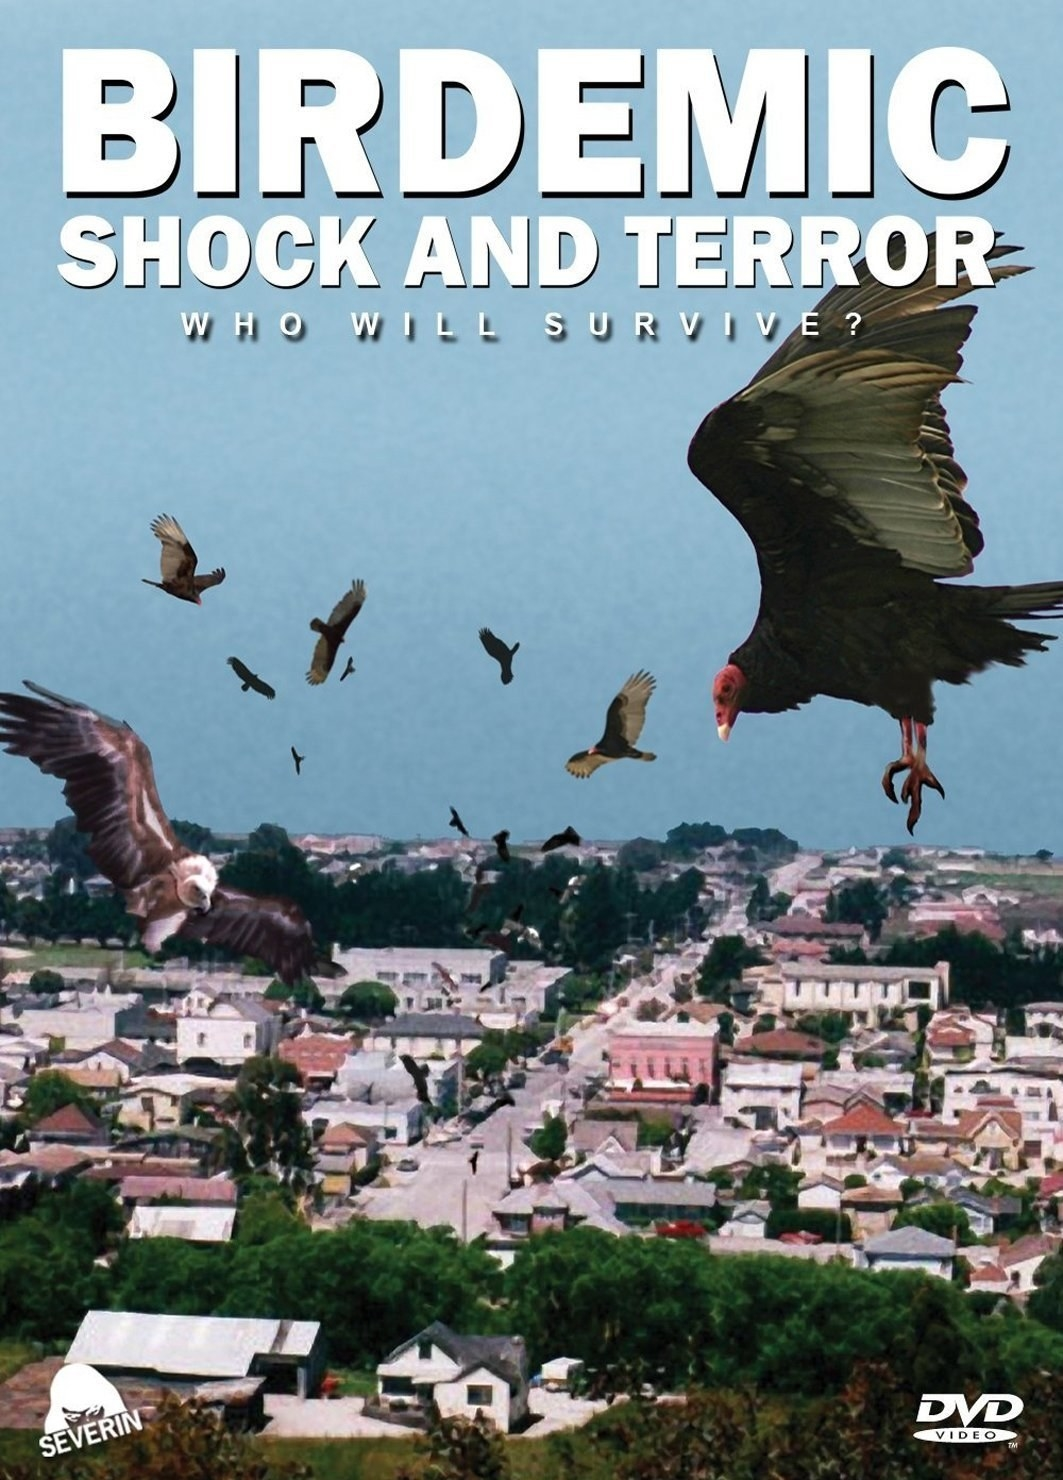 Cover of Birdemic Movie with birds flying over town.